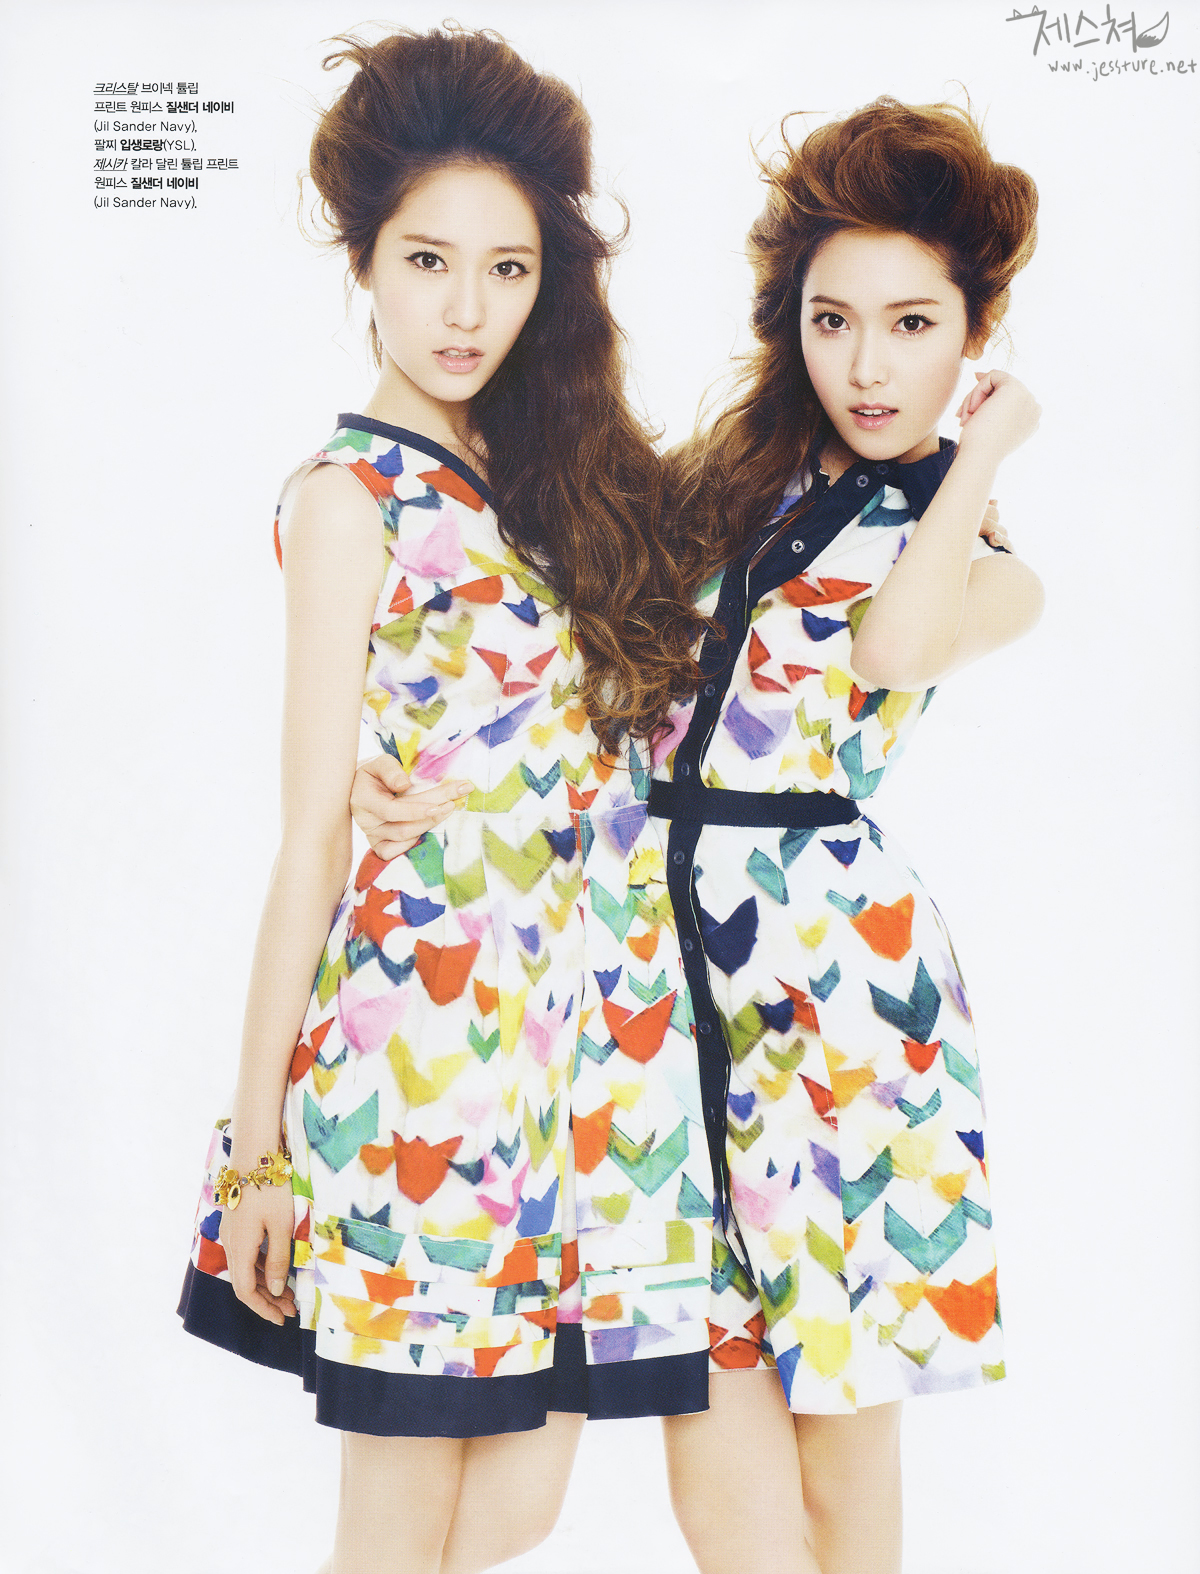 Marie Claire's July Issue ft. Jessica And f(x) Krystal ... F(x) Krystal And Jessica